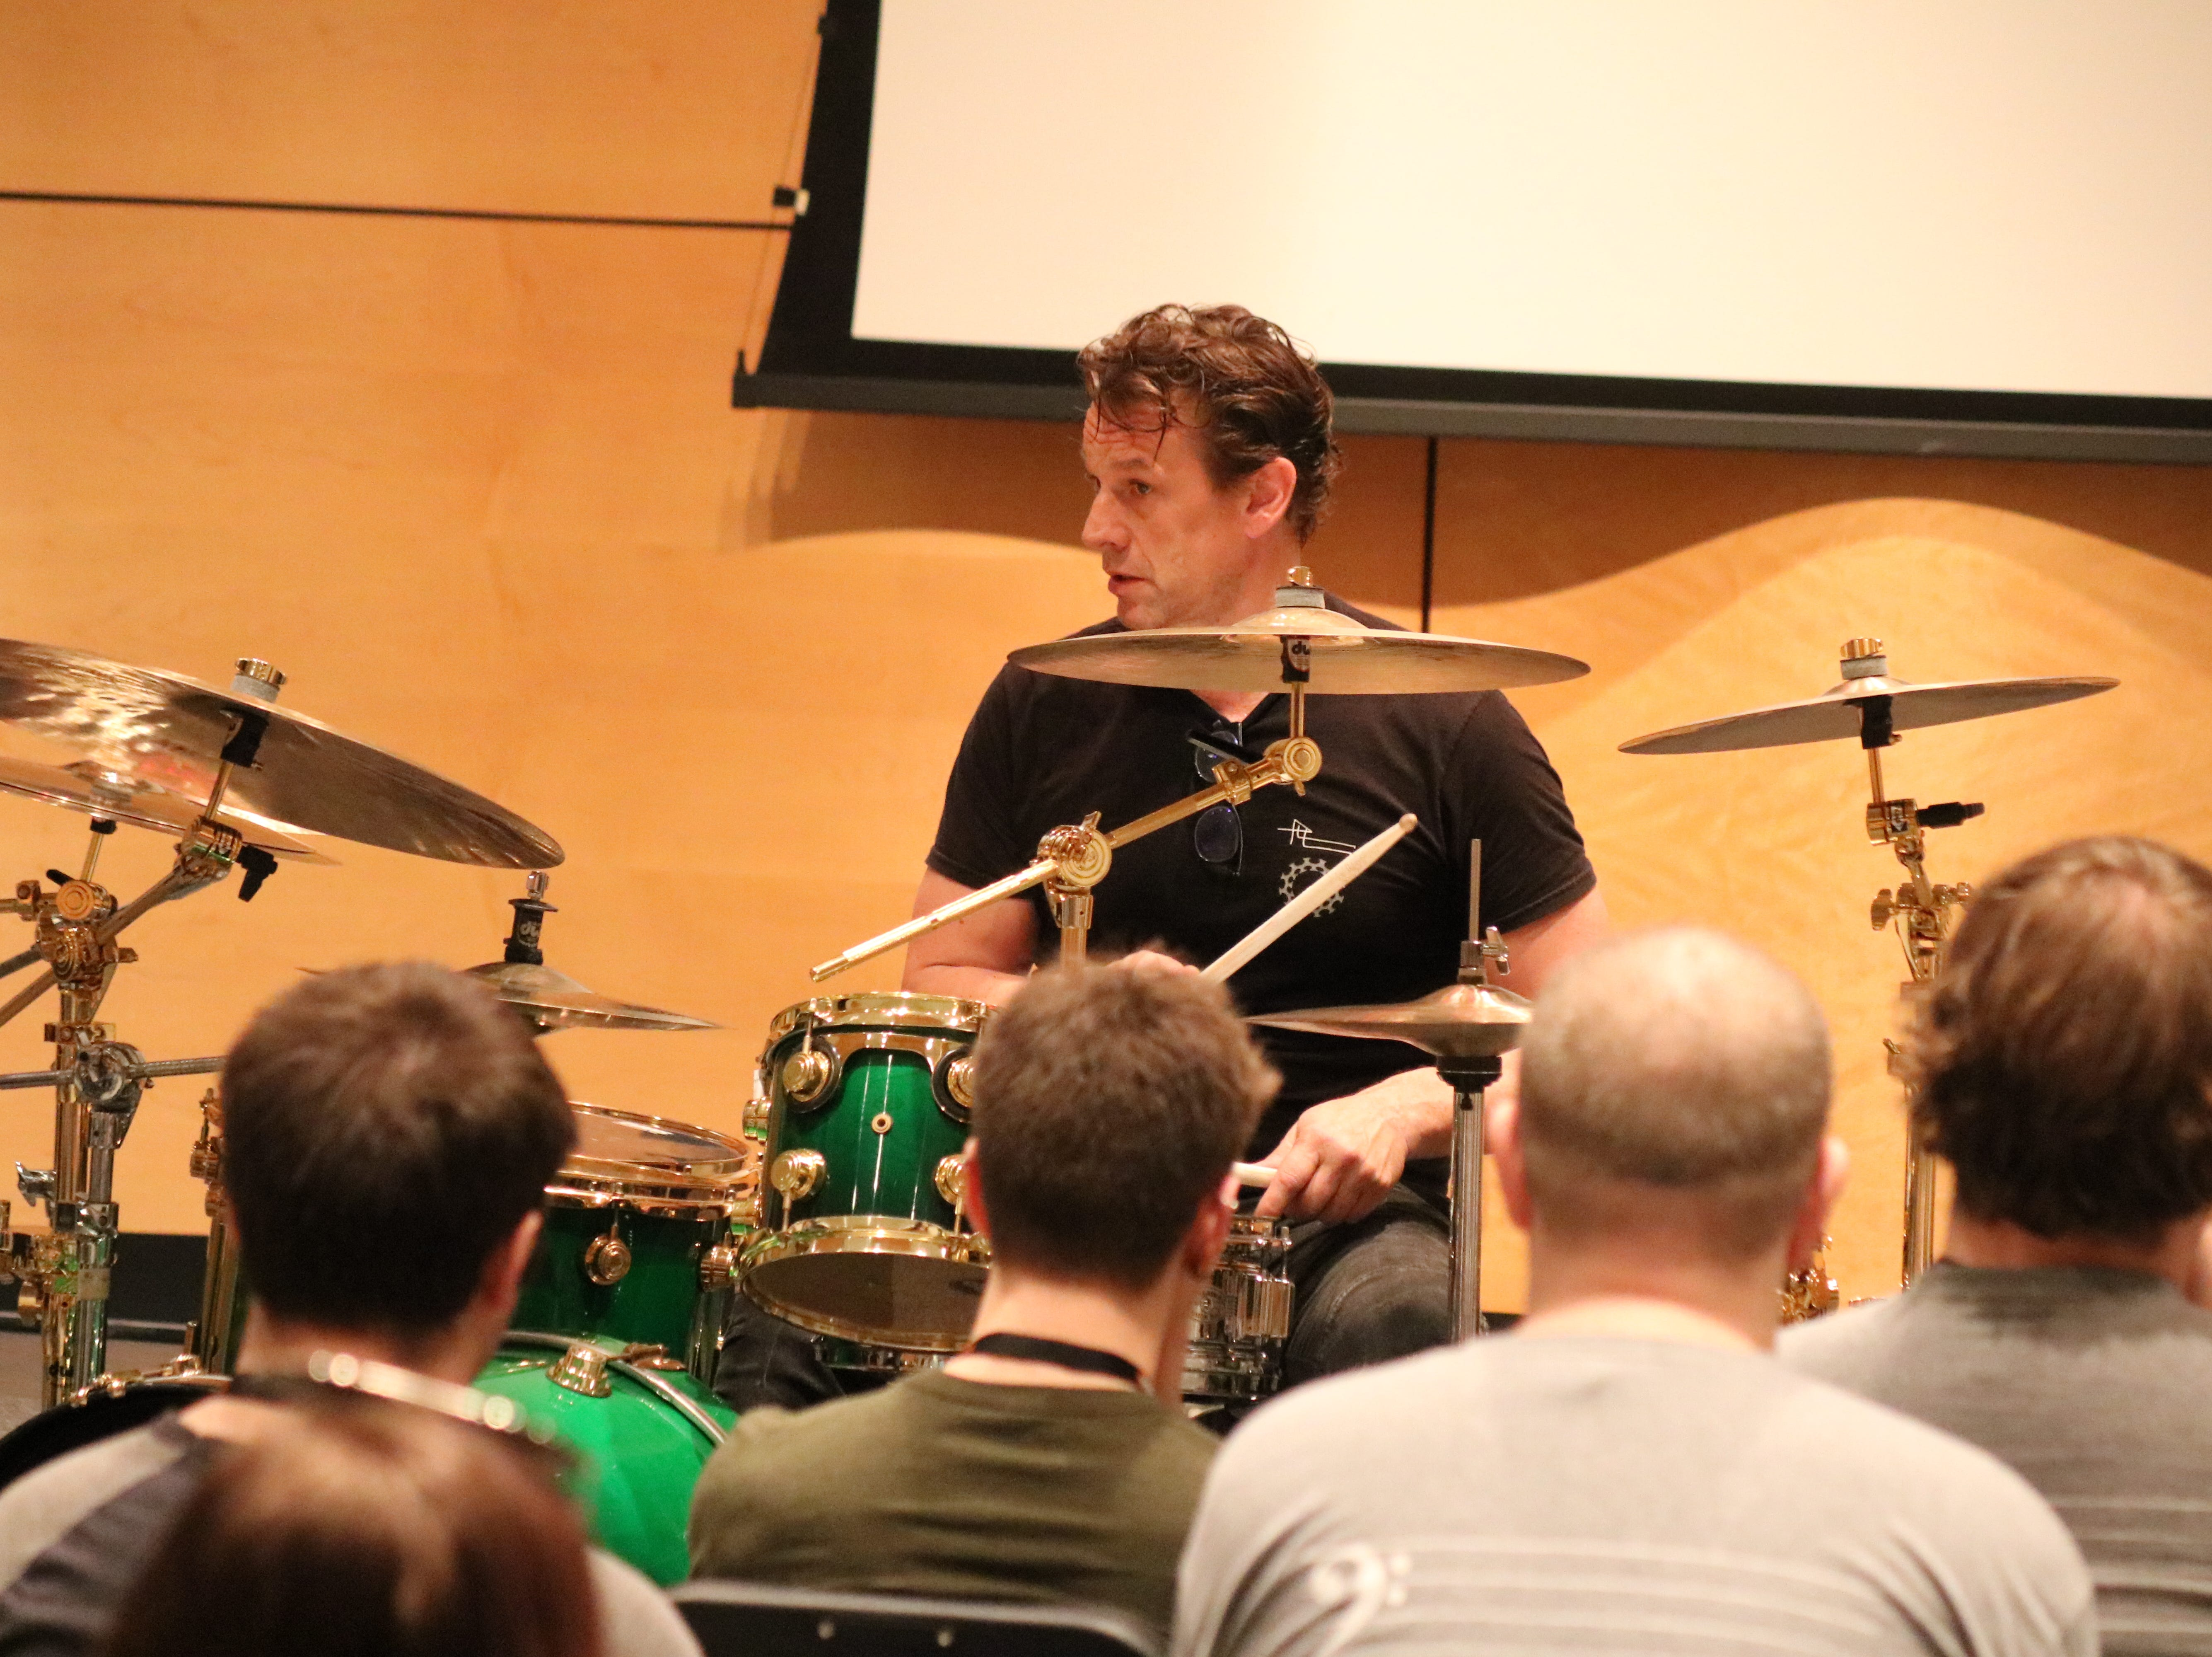 Thomas Lang, among the best drummers in the world, gave a clinic at the 2019 Midwest Rhythm Summit at Terra State Community College on Saturday.